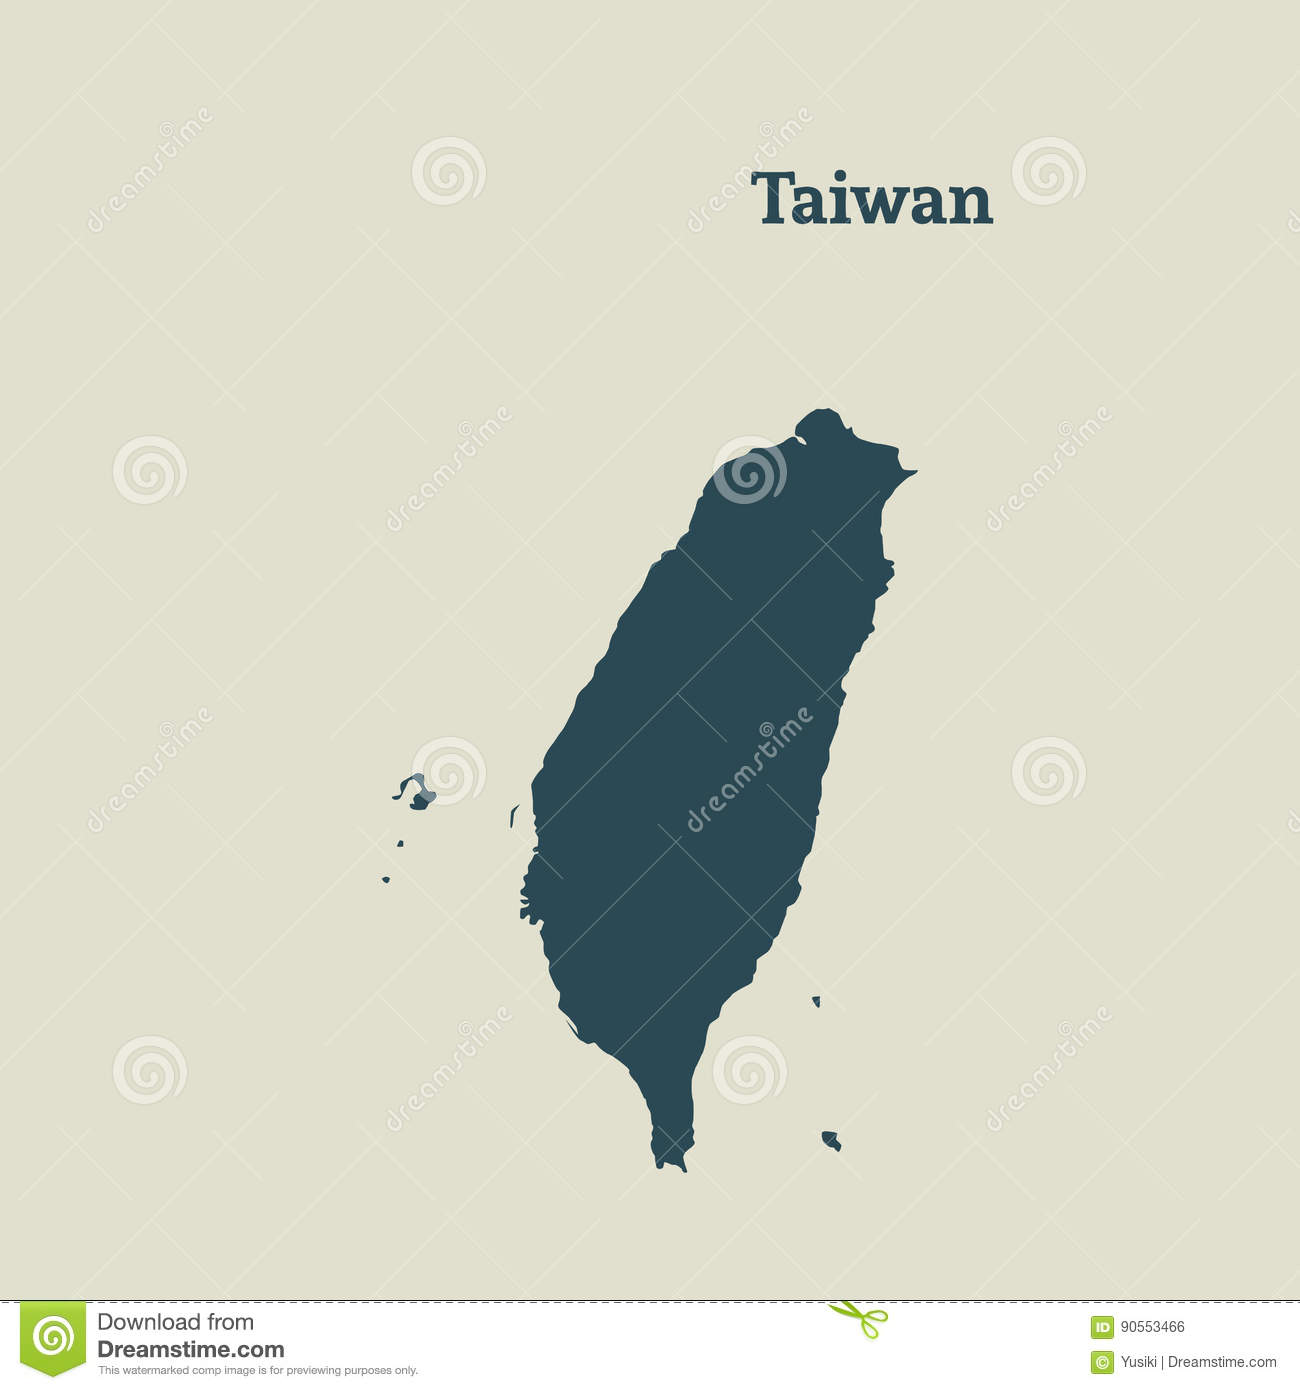 Asia Map Taiwan.Outline Map Of Taiwan Illustration Stock Illustration